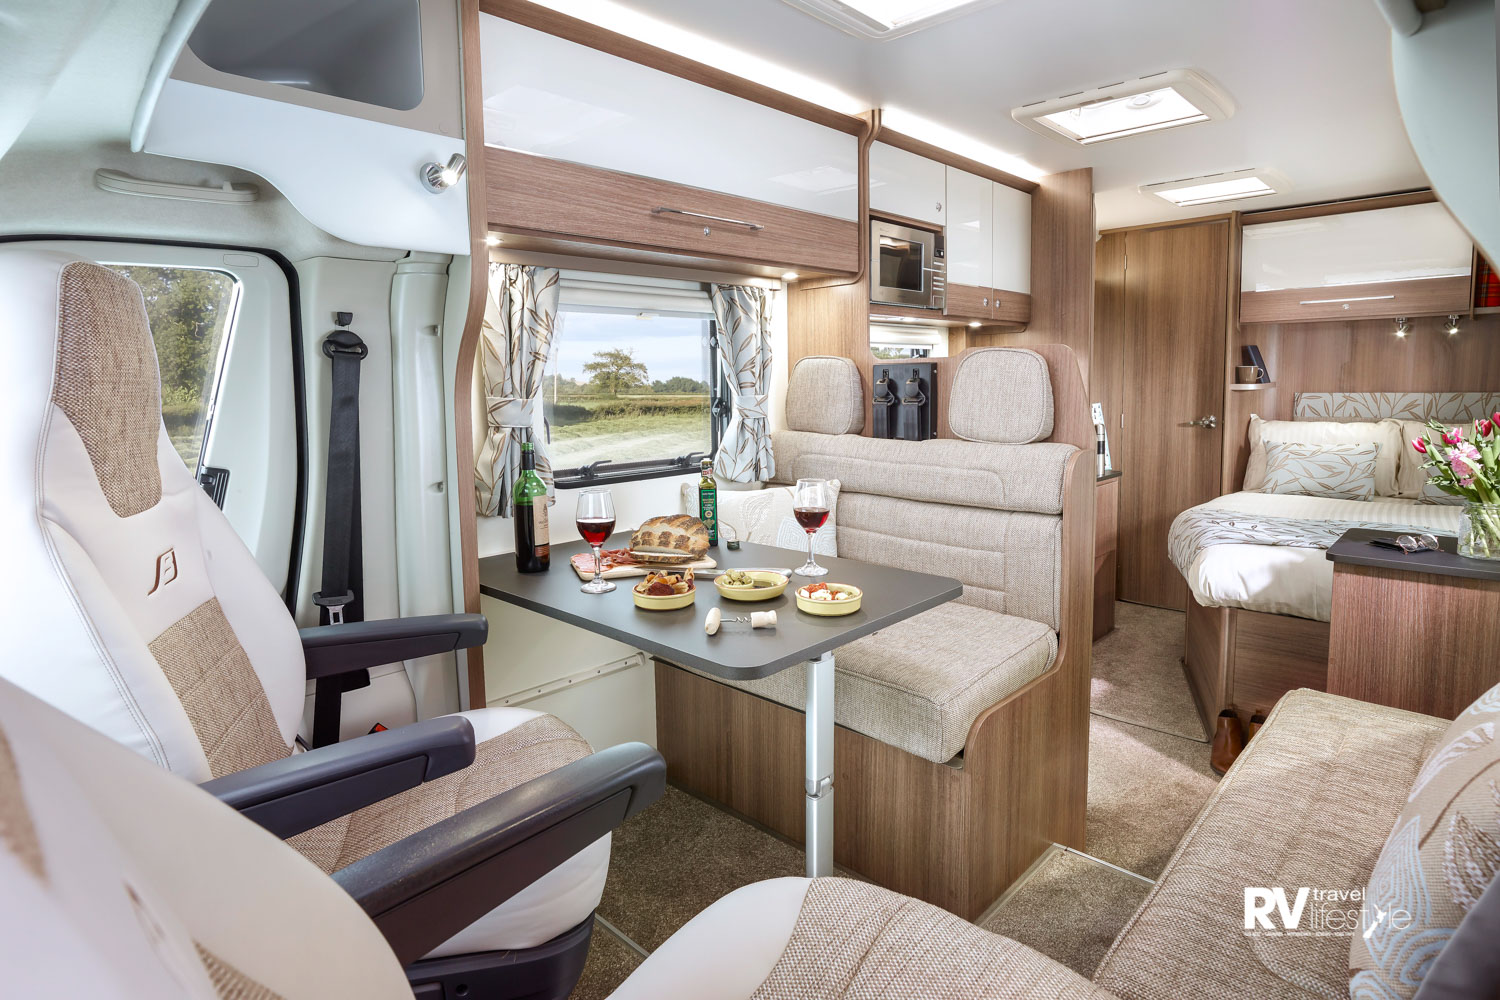 2018 Bailey Advance 76–4: Interior – front lounge through to rear bedroom. These models are arriving on sales yards thru November and December